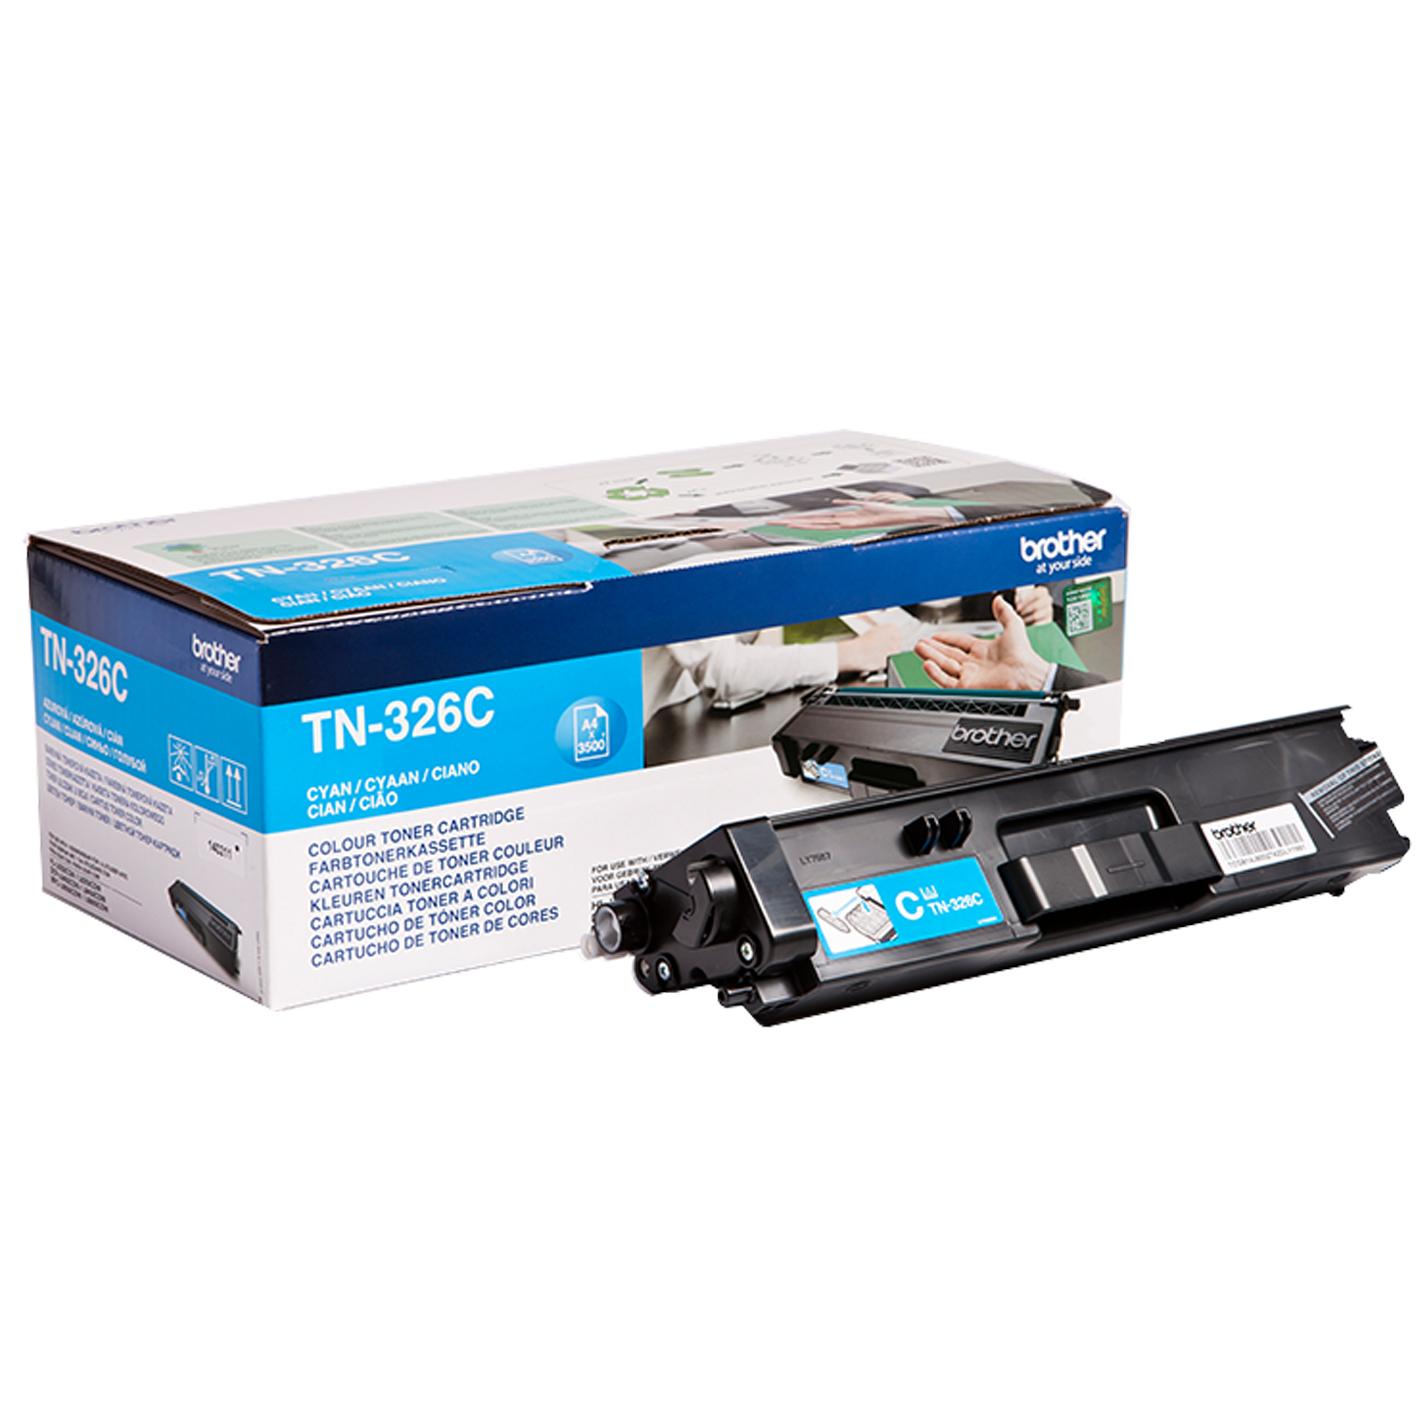 Tn326c brother Hll8250/dpcl8400/8450 Cyan Ton 3.5k - AD01